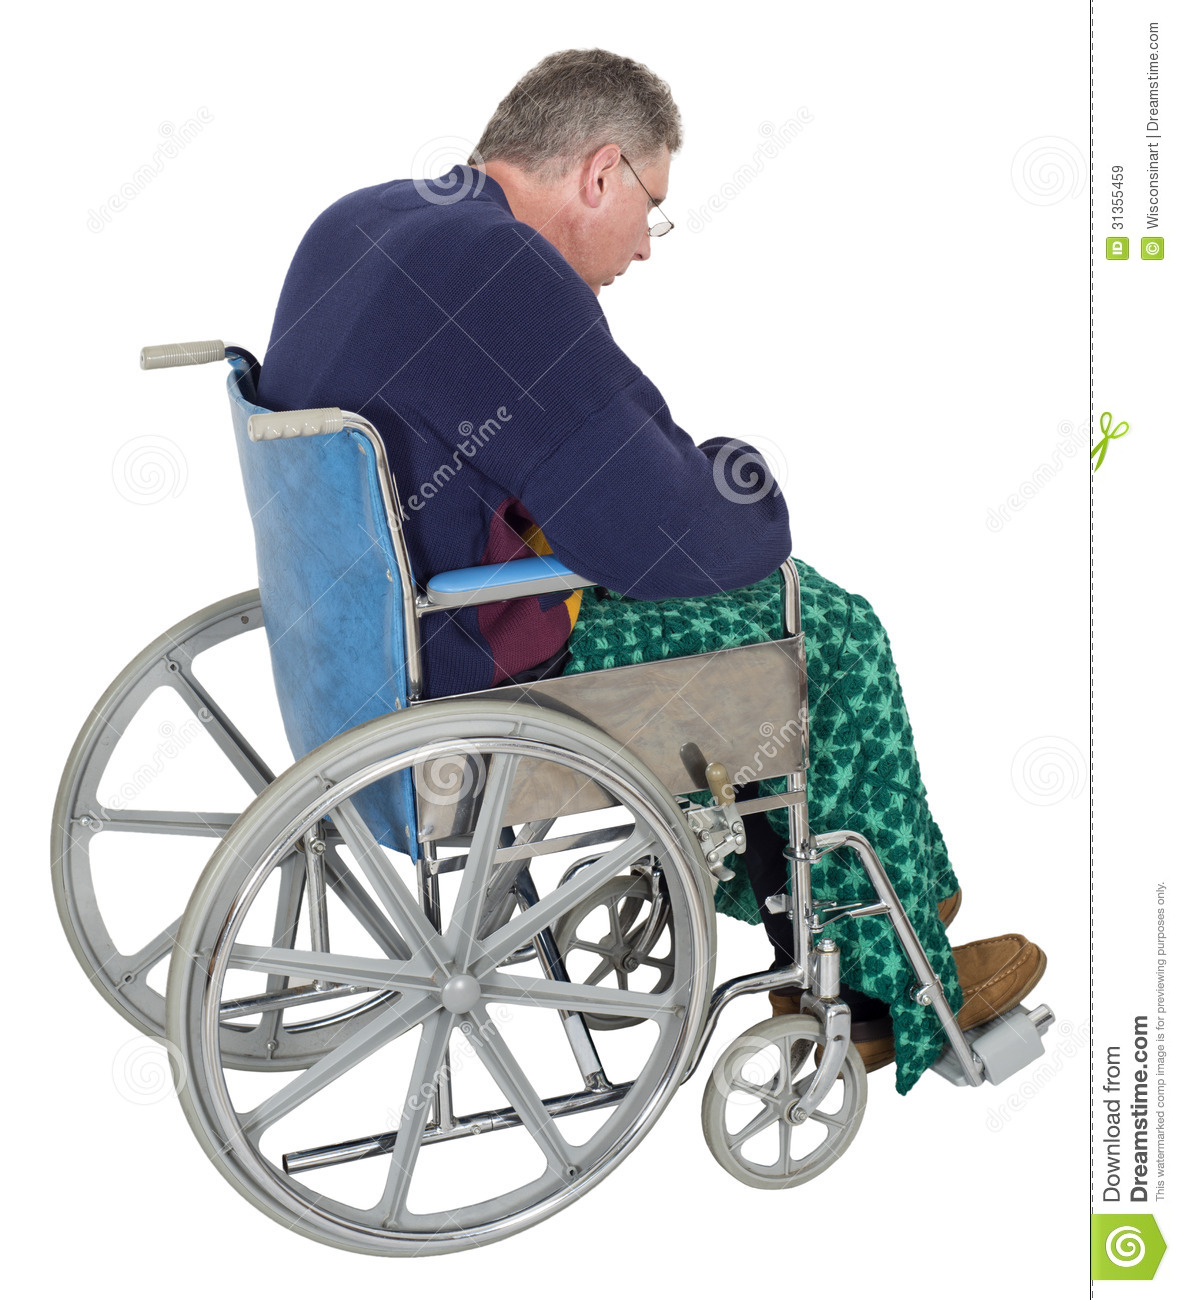 wheelchair man gold dining room chair covers sad lonely senior elderly stock image